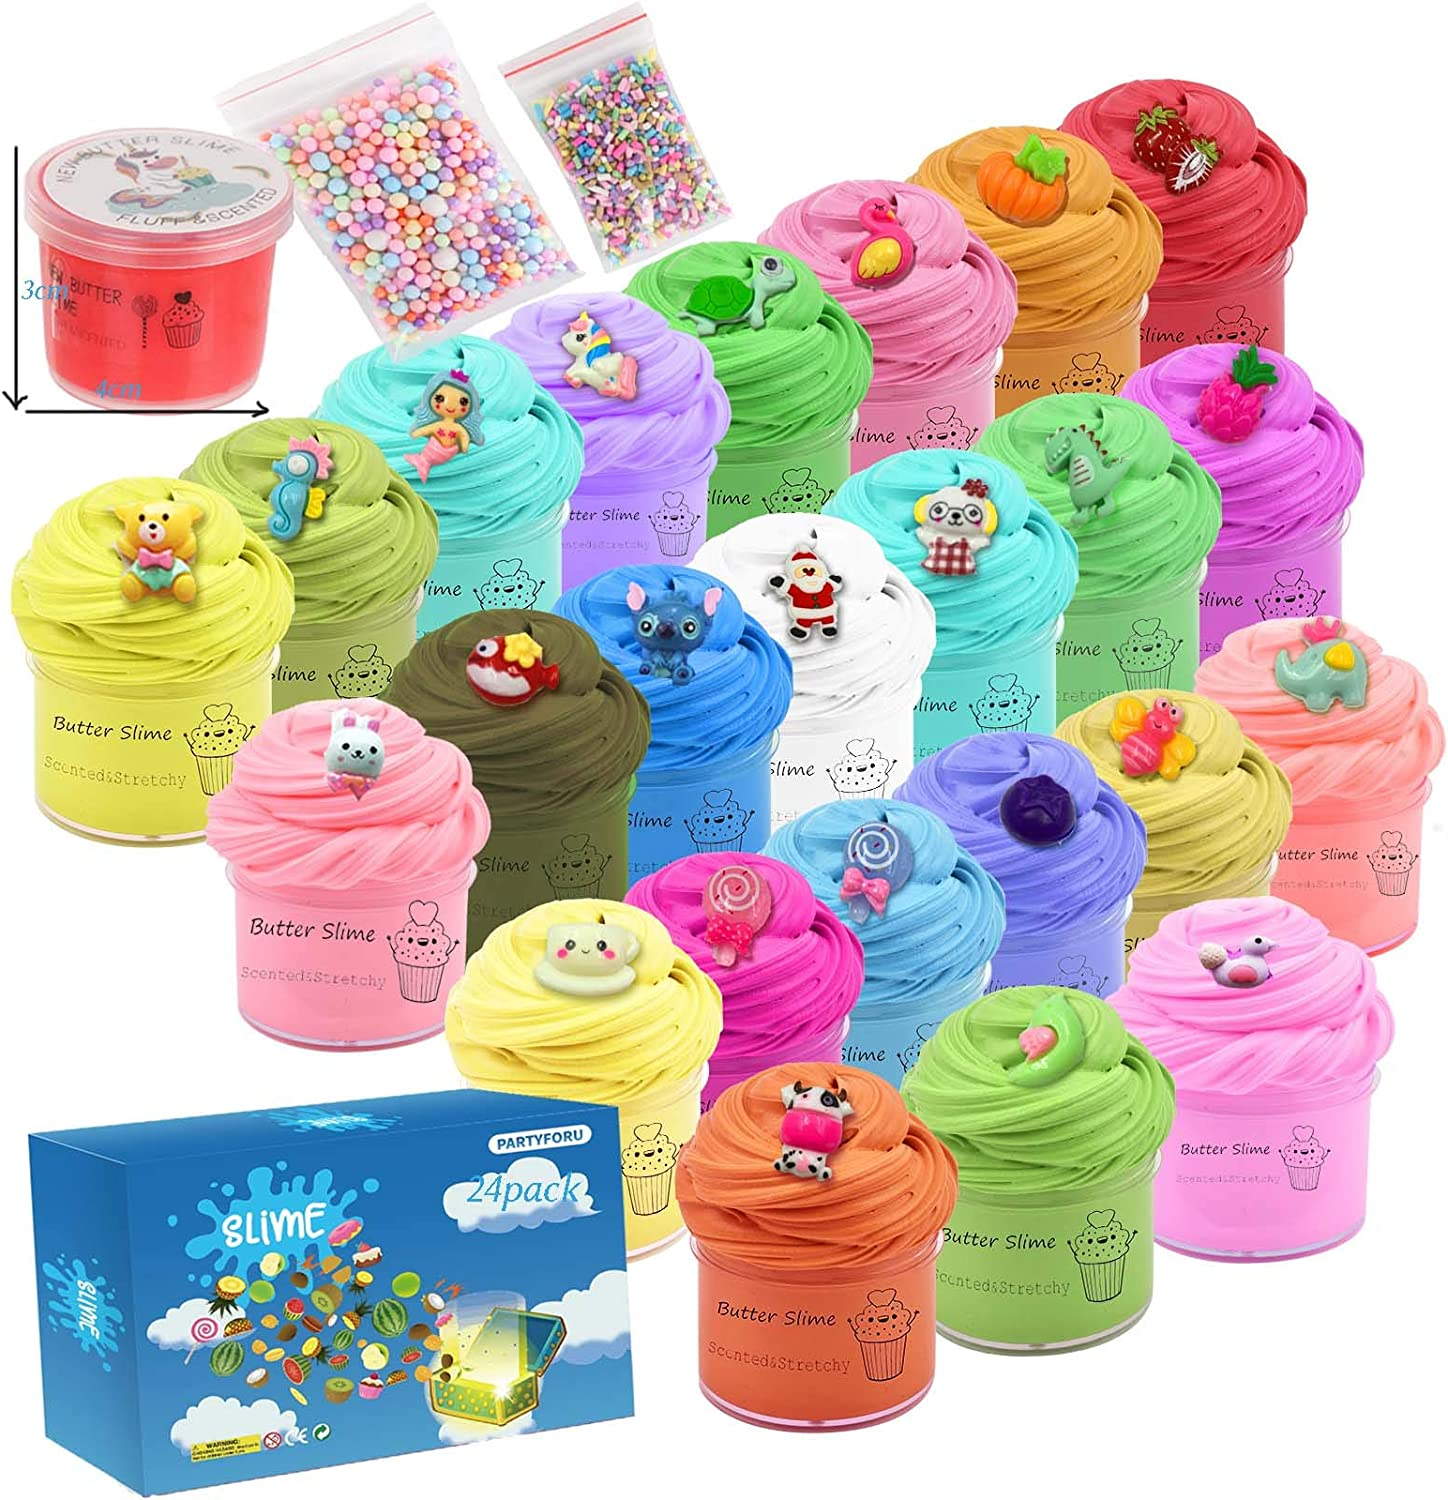 Partyforu 24 Pack Mini can Slime, Butter Slime,Animal and Fruit Slime, Stretchy and Non-Sticky, Stress Relief Toy for Girl and Boys